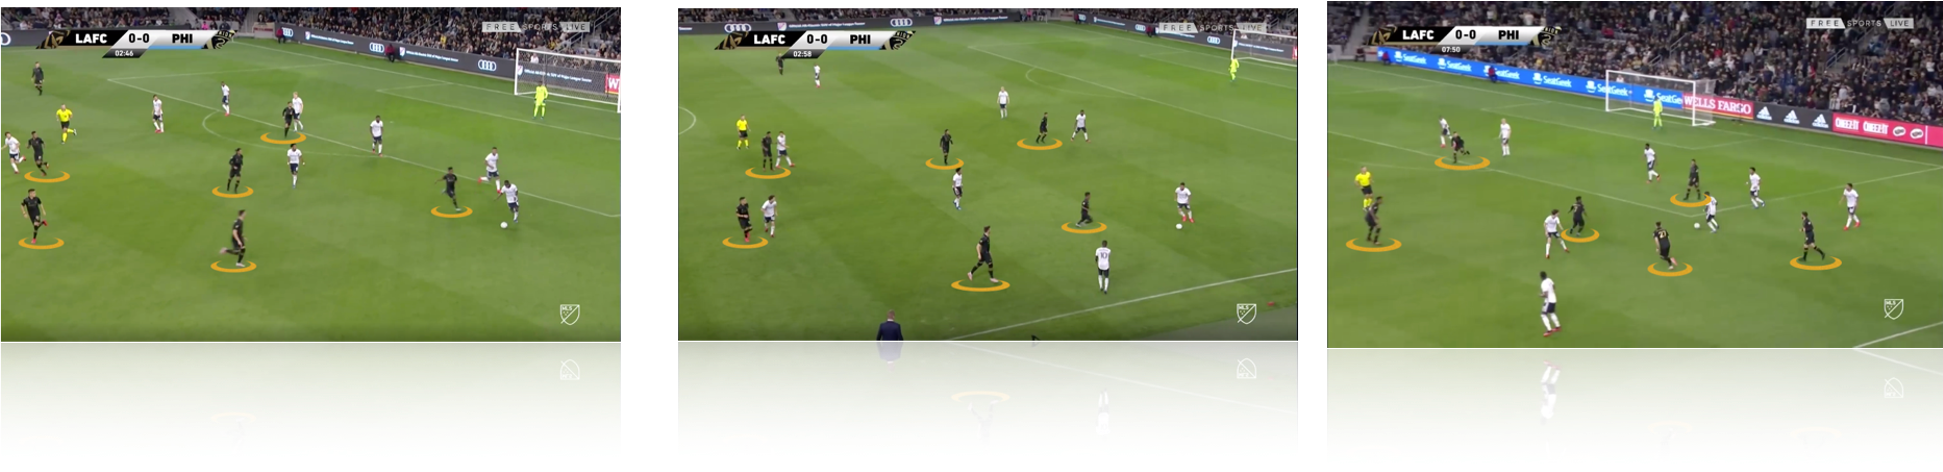 Bob Bradley at LAFC 2020 - tactical analysis tactics